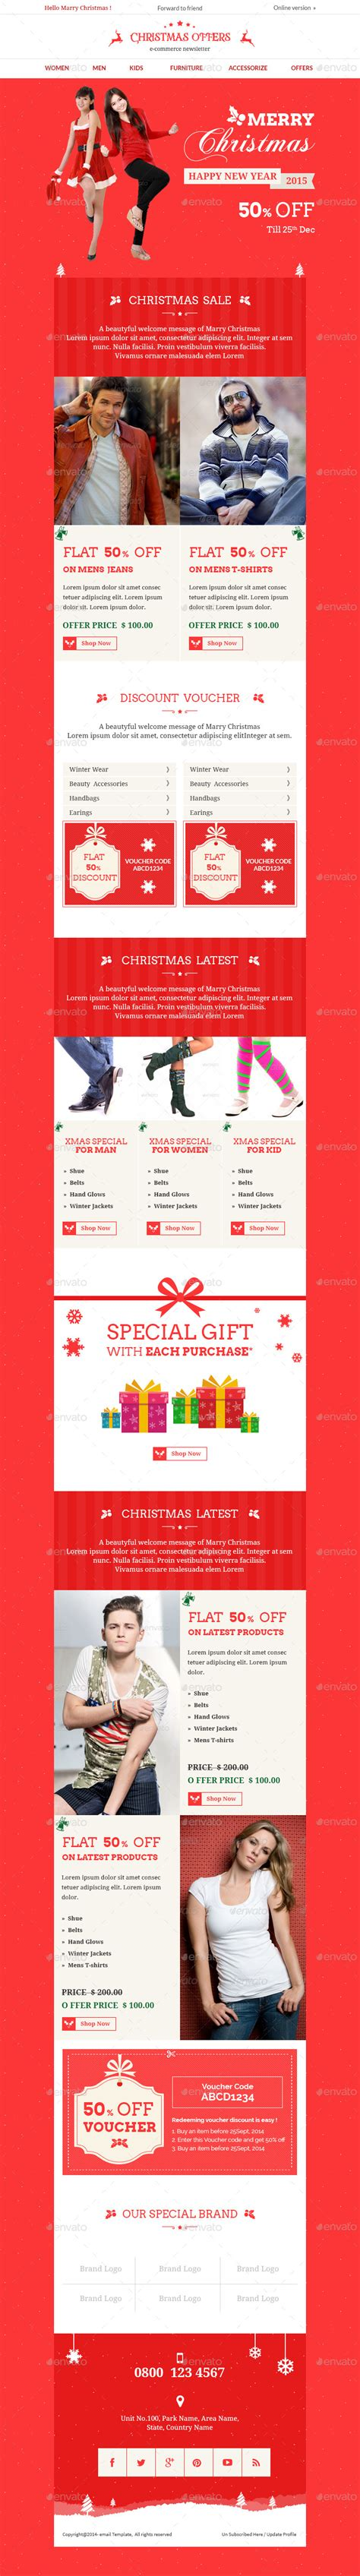 Christmas Offers E Commerce E Newsletter Psd Template By Aksharthemes Special Offer Email Template